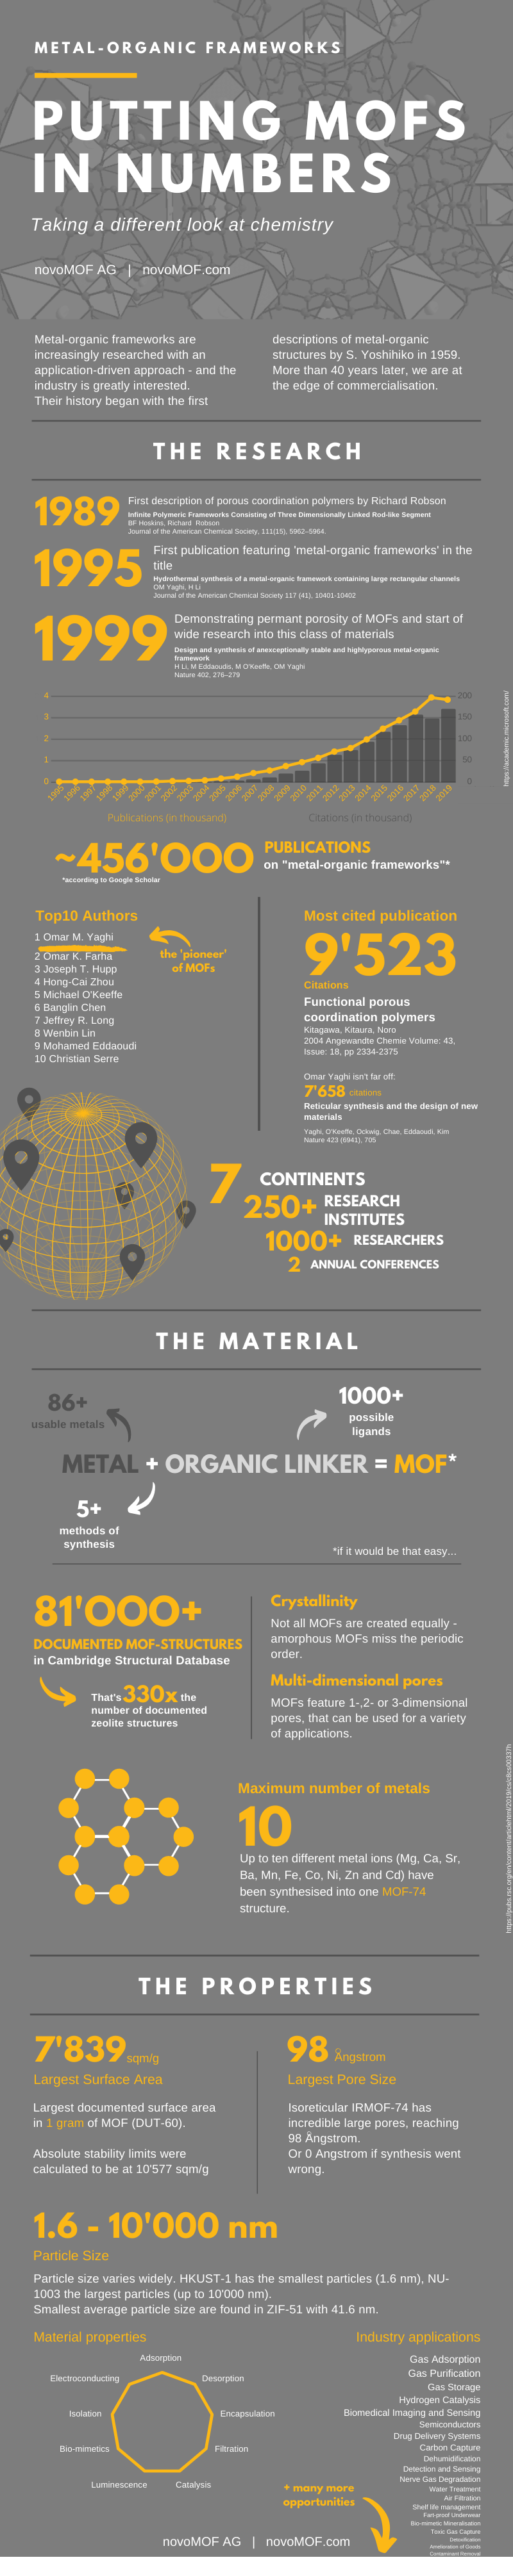 Putting MOFs in Numbers - Infografic